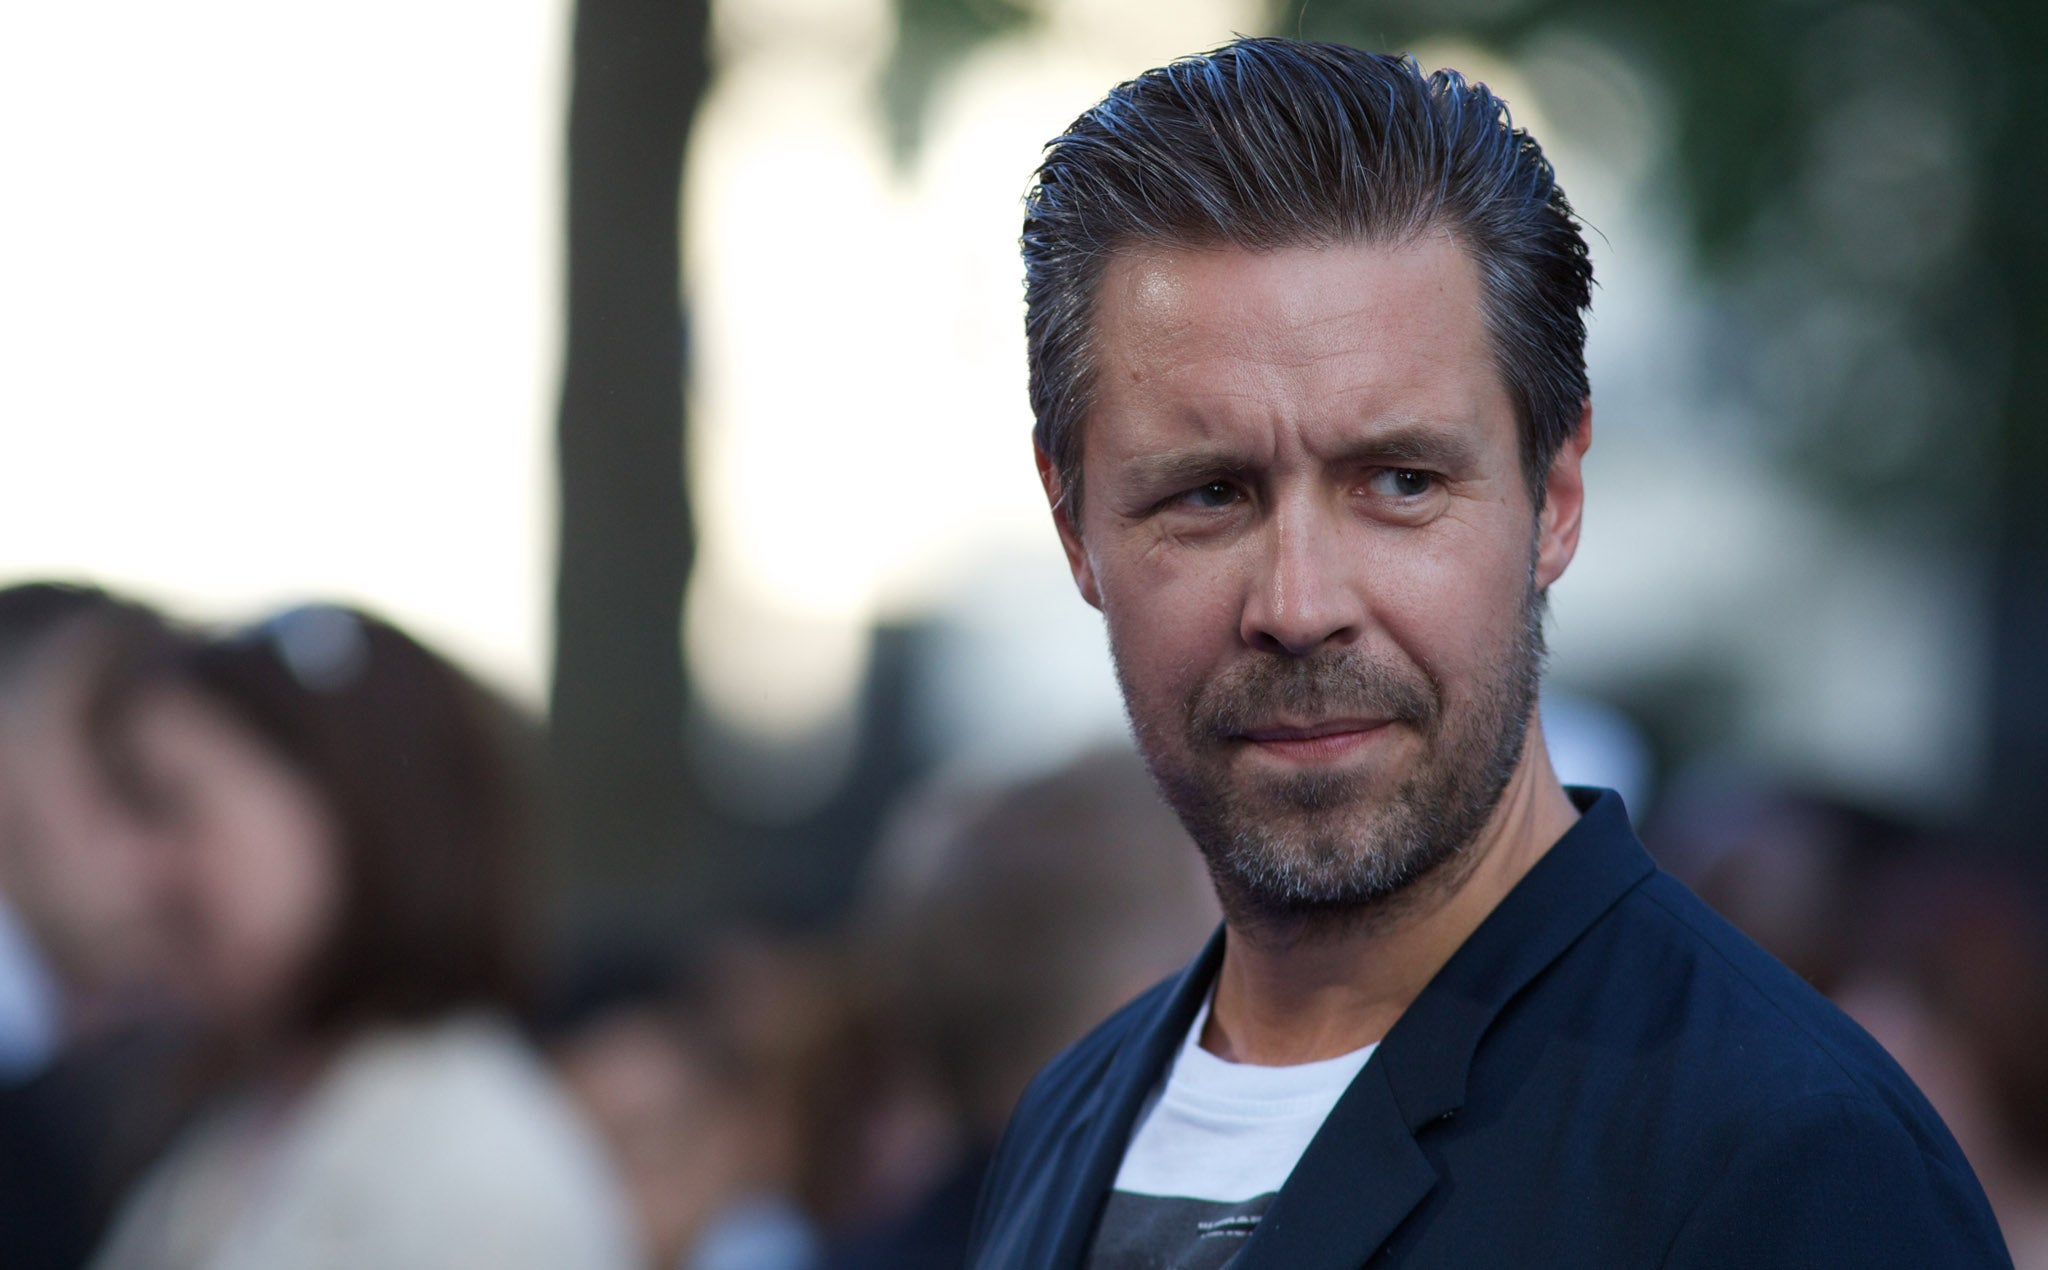 Paddy Considine earned a  million dollar salary - leaving the net worth at 1 million in 2018